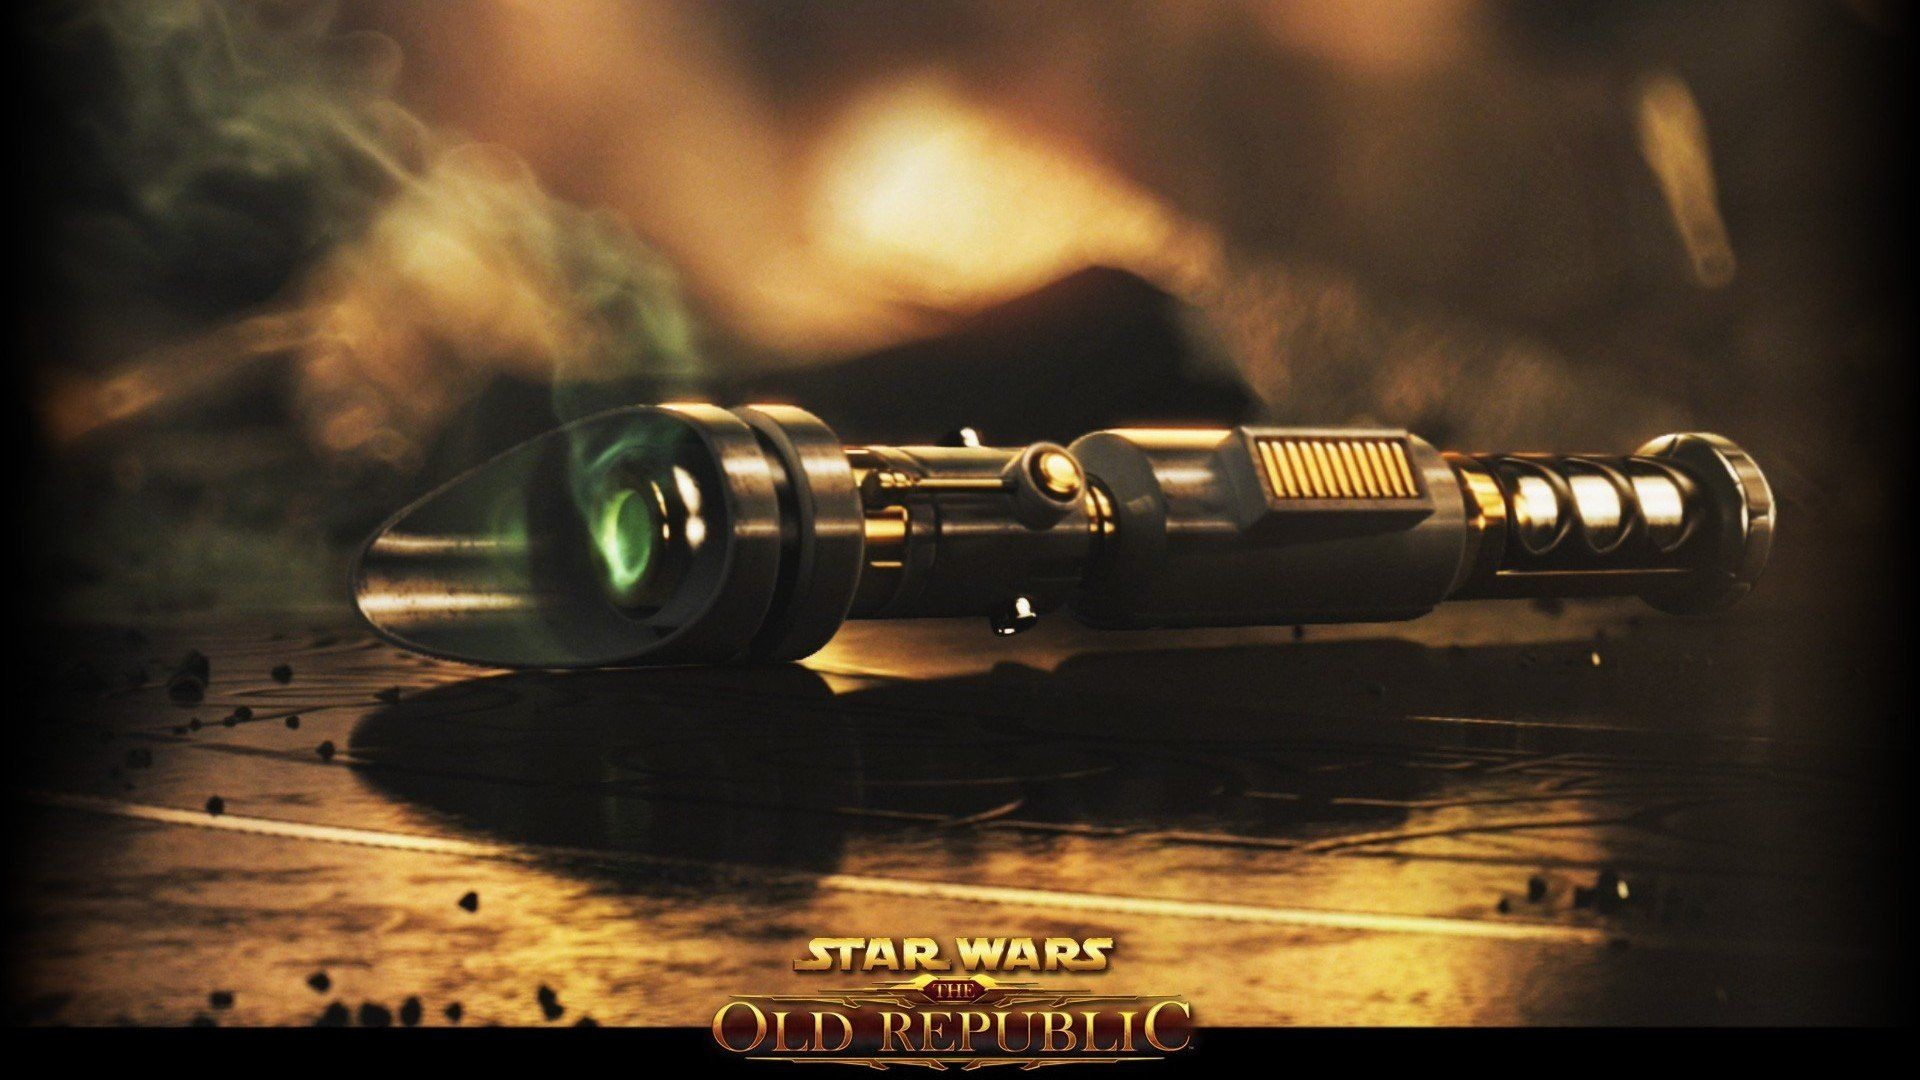 1920x1080 STAR WARS Old Republic sci-fi futuristic action fighting mmo rpg .